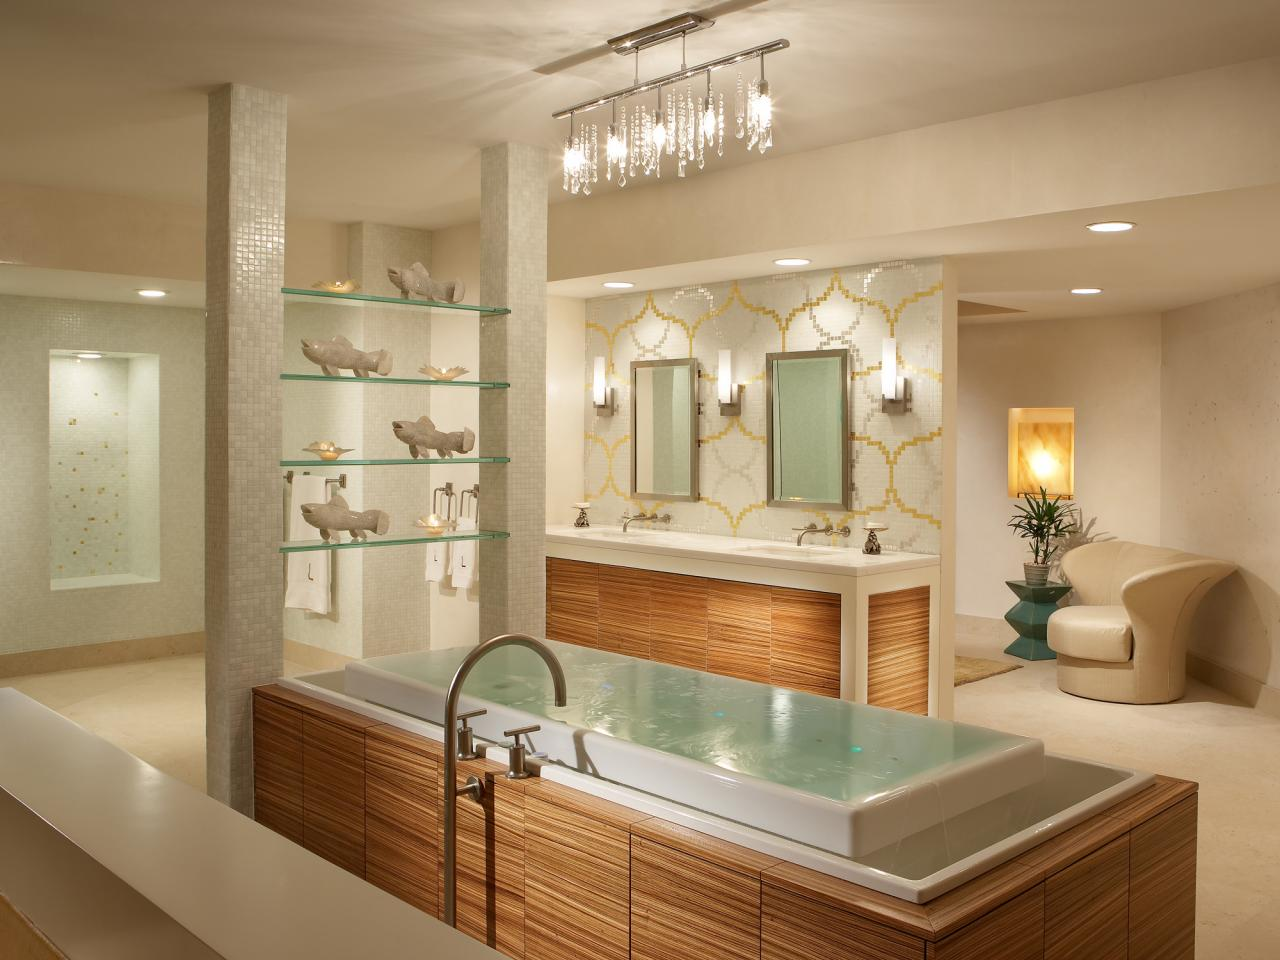 Hanging bathroom lights - Bathroom Lighting Fixtures